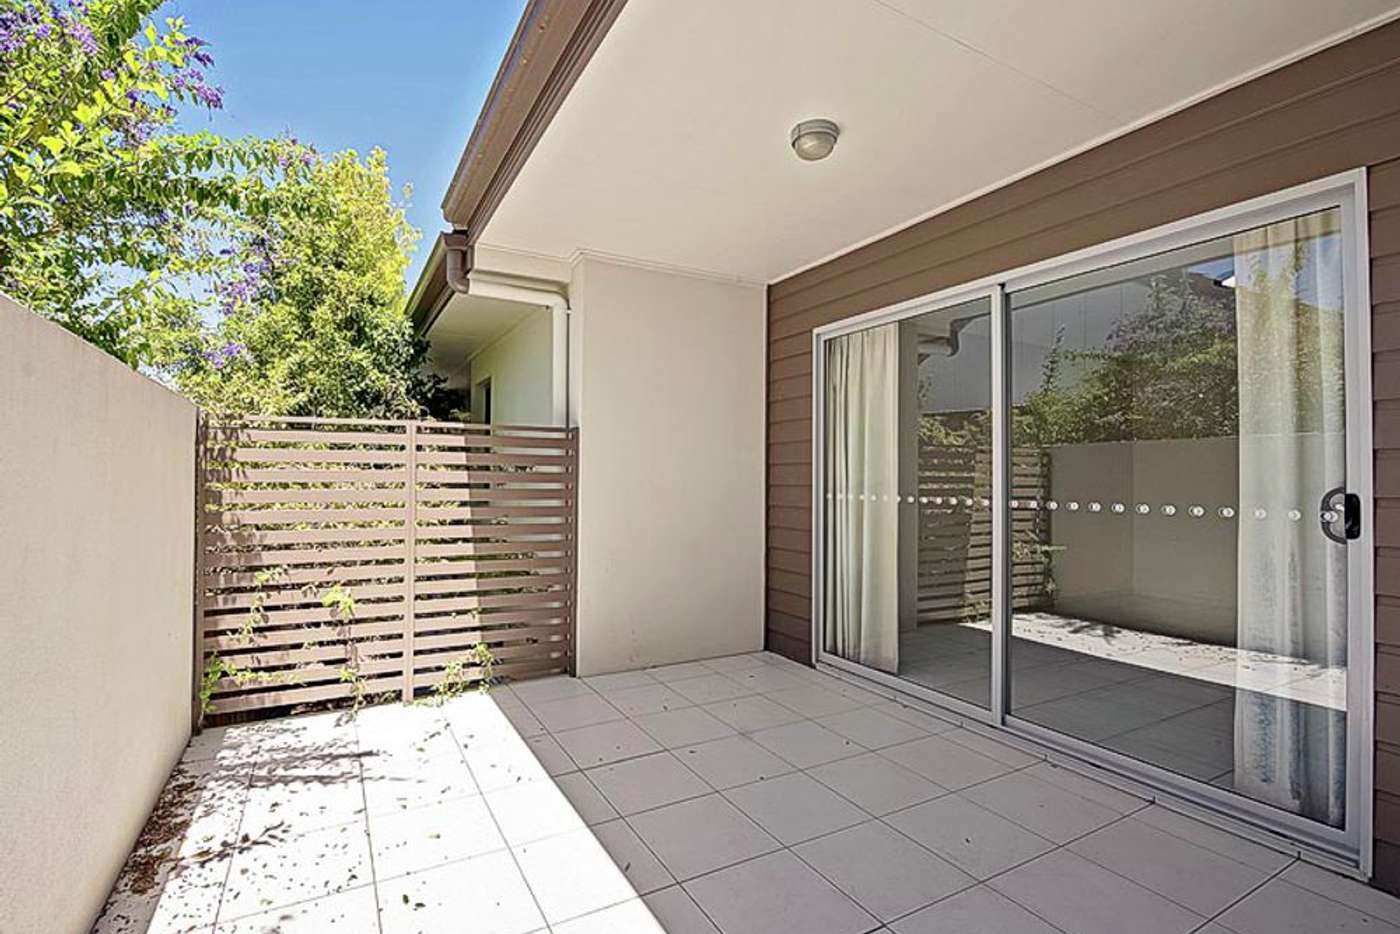 Seventh view of Homely unit listing, 3/69 Denman Street, Greenslopes QLD 4120